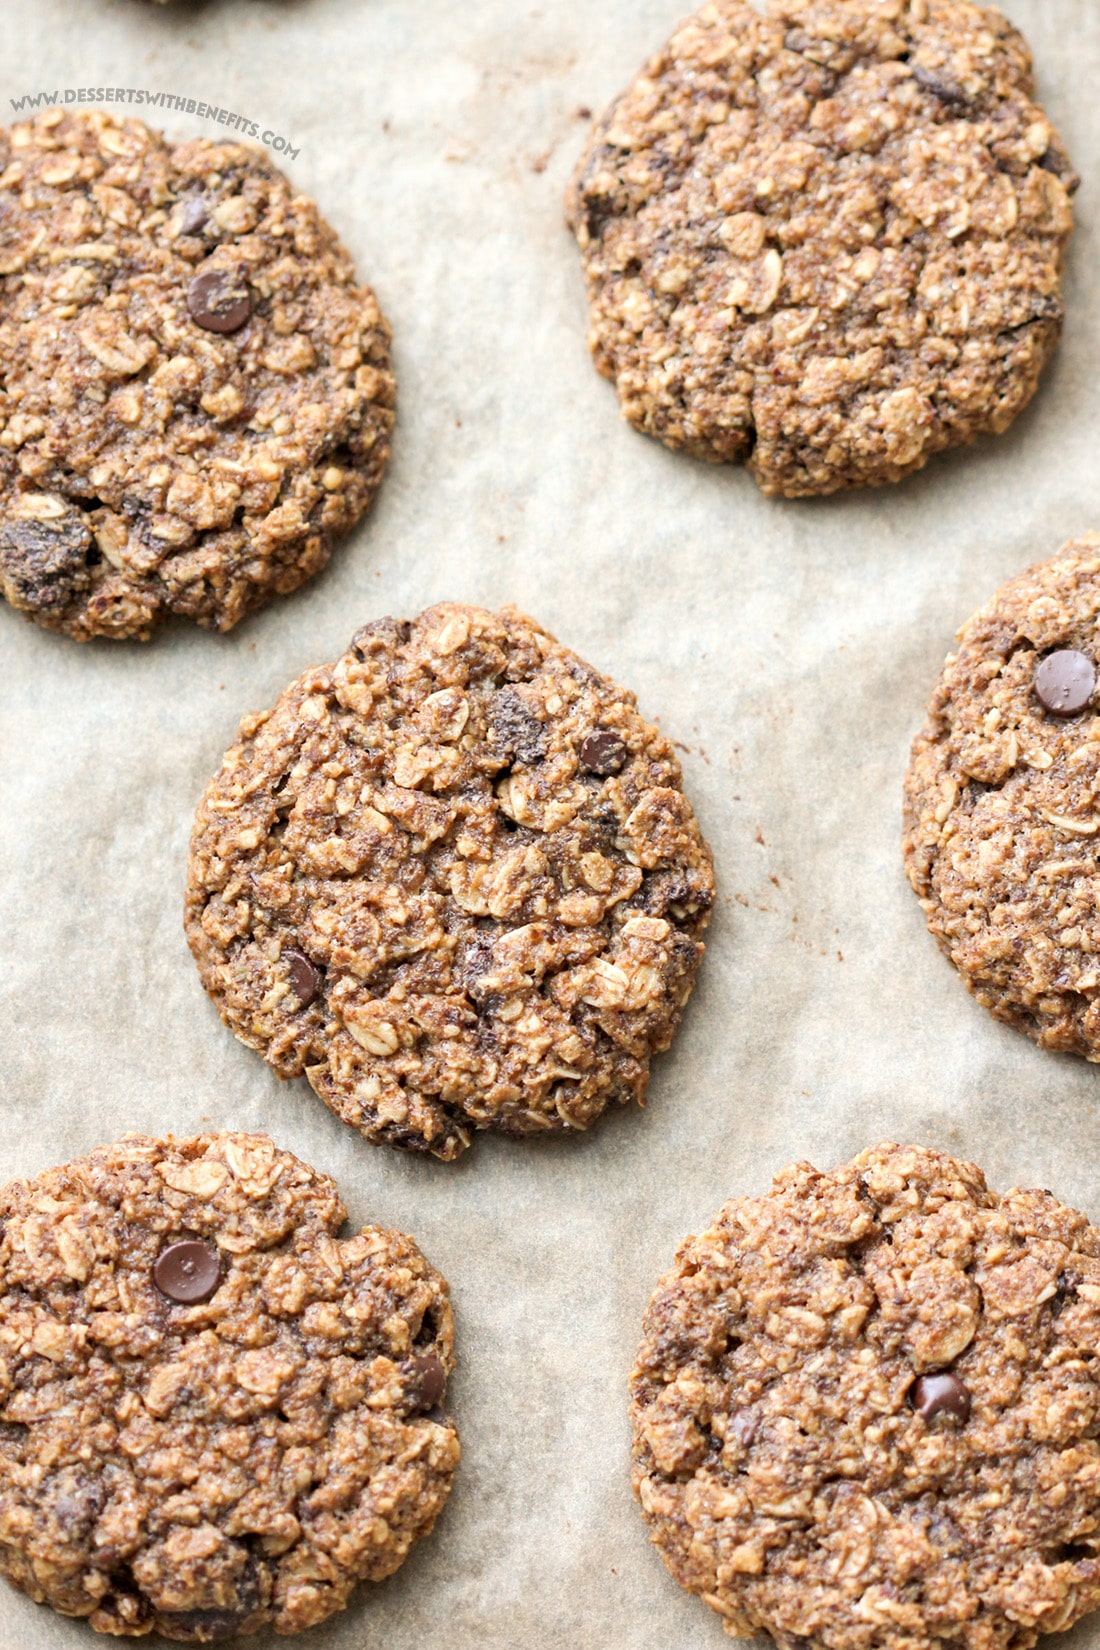 15 Healthy Nutella Recipes | These Healthy Nutella Chip Oatmeal Cookies are sweet, chewy, and addicting, yet refined sugar free, gluten free, dairy free, and vegan! Healthy Dessert Recipes at Desserts with Benefits